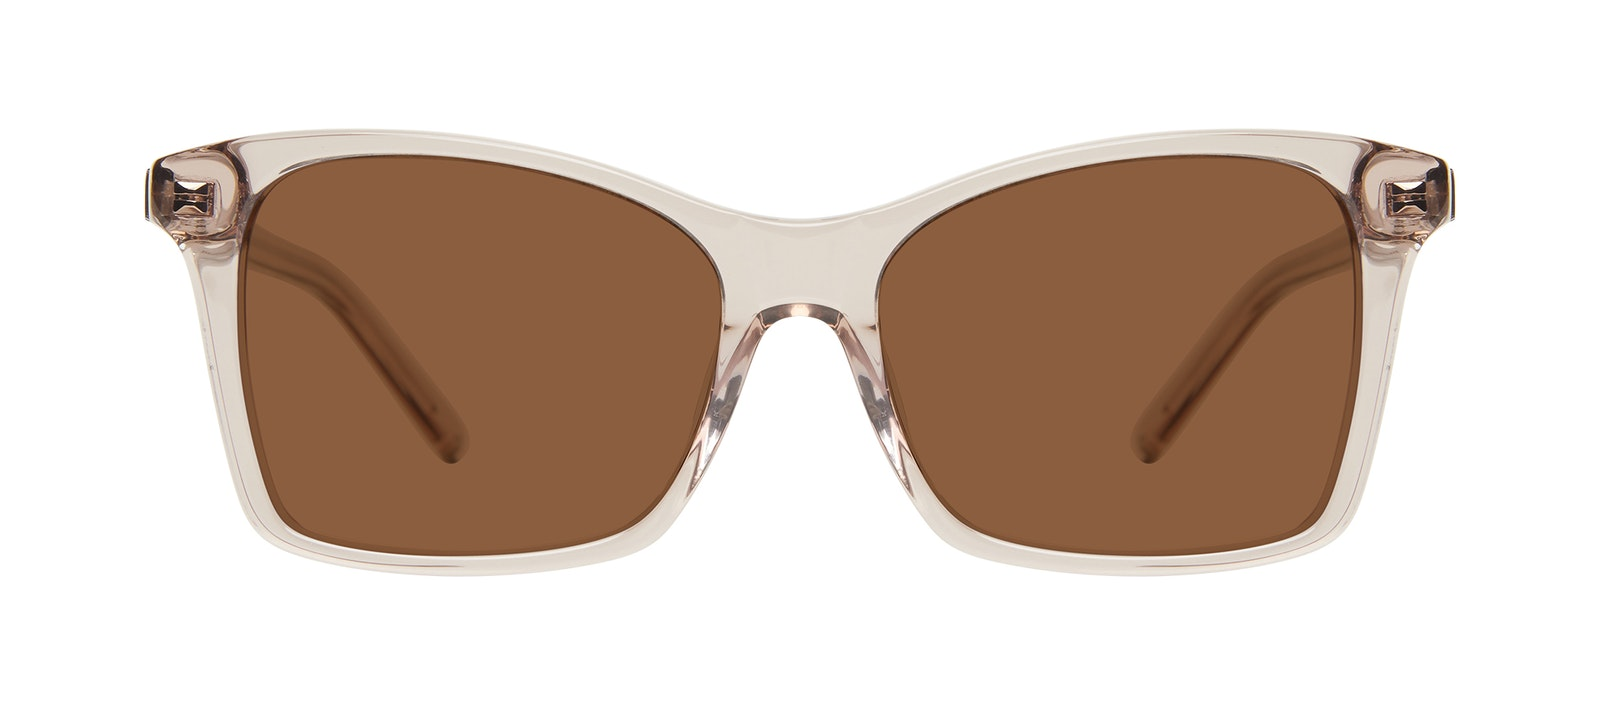 Affordable Fashion Glasses Square Sunglasses Women Cadence Sand Front